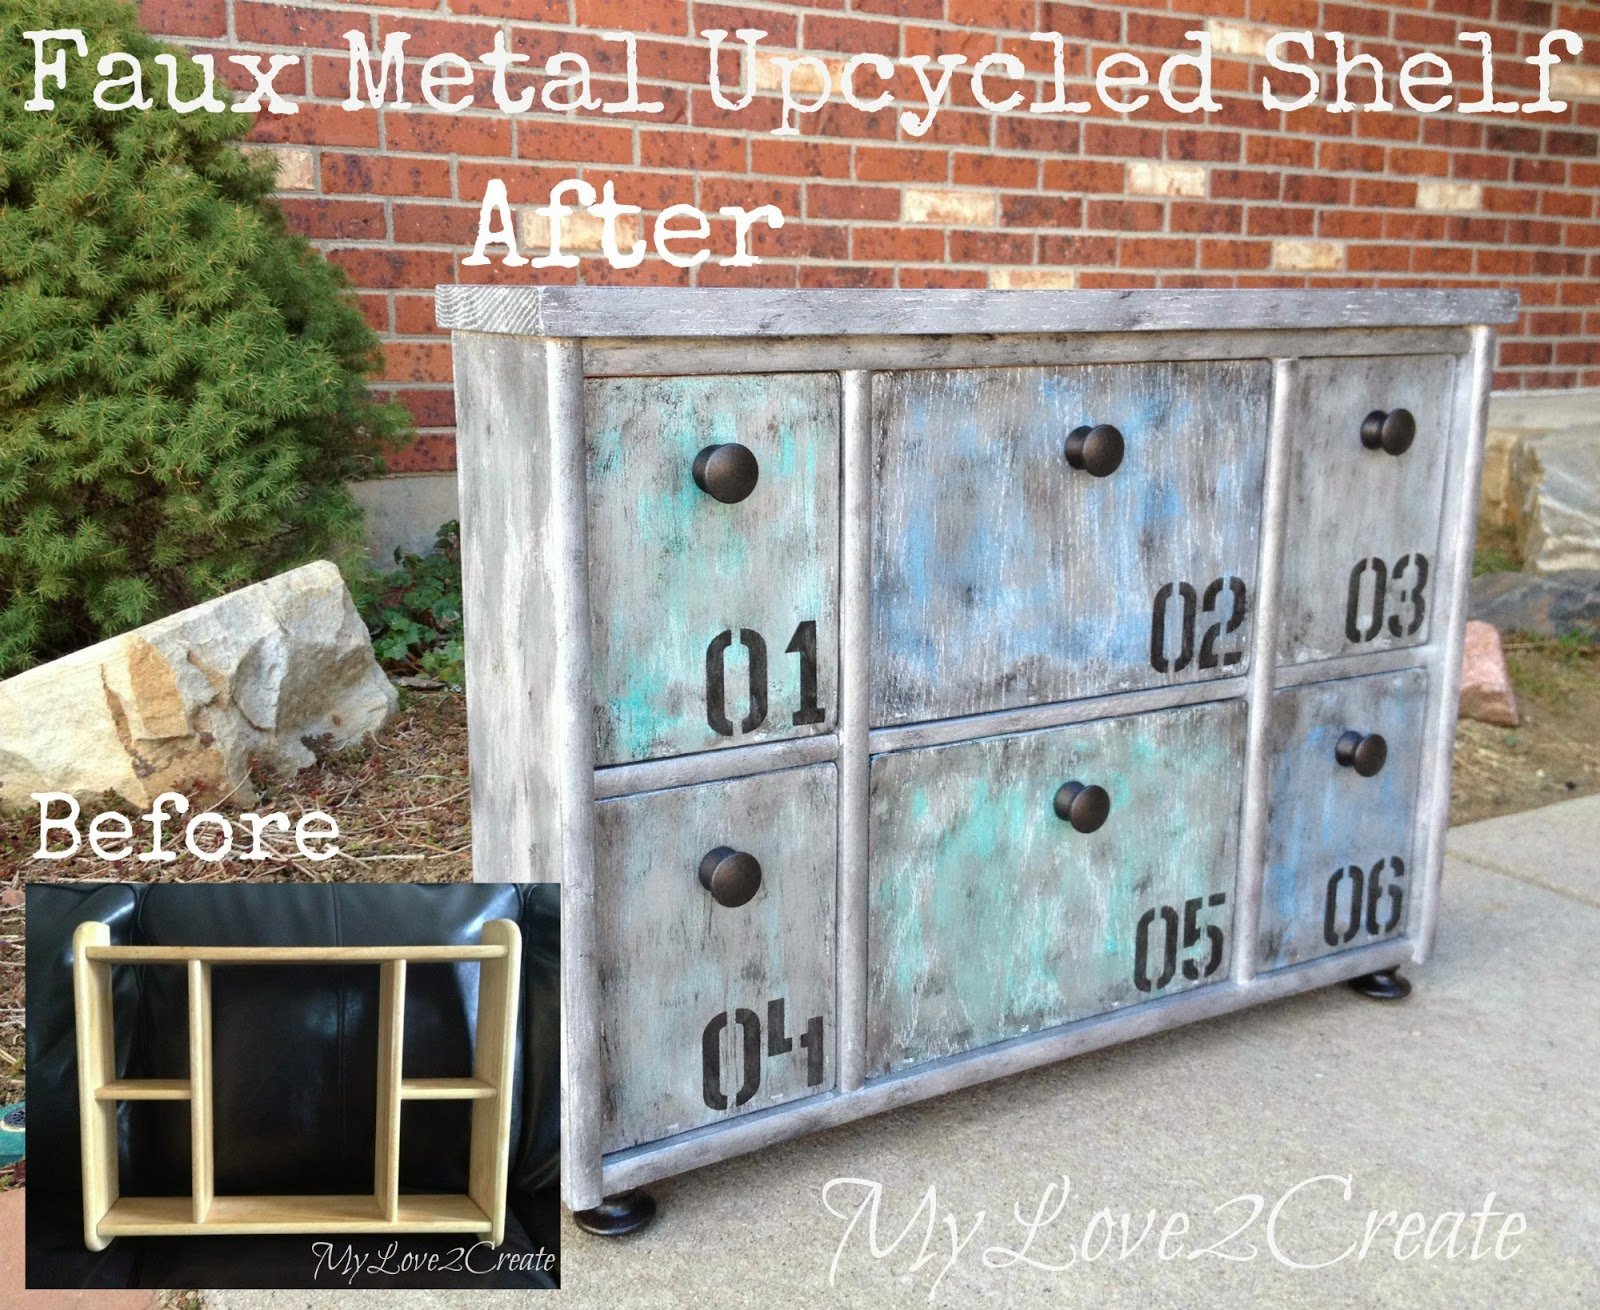 Faux Metal Upcycled Shelf